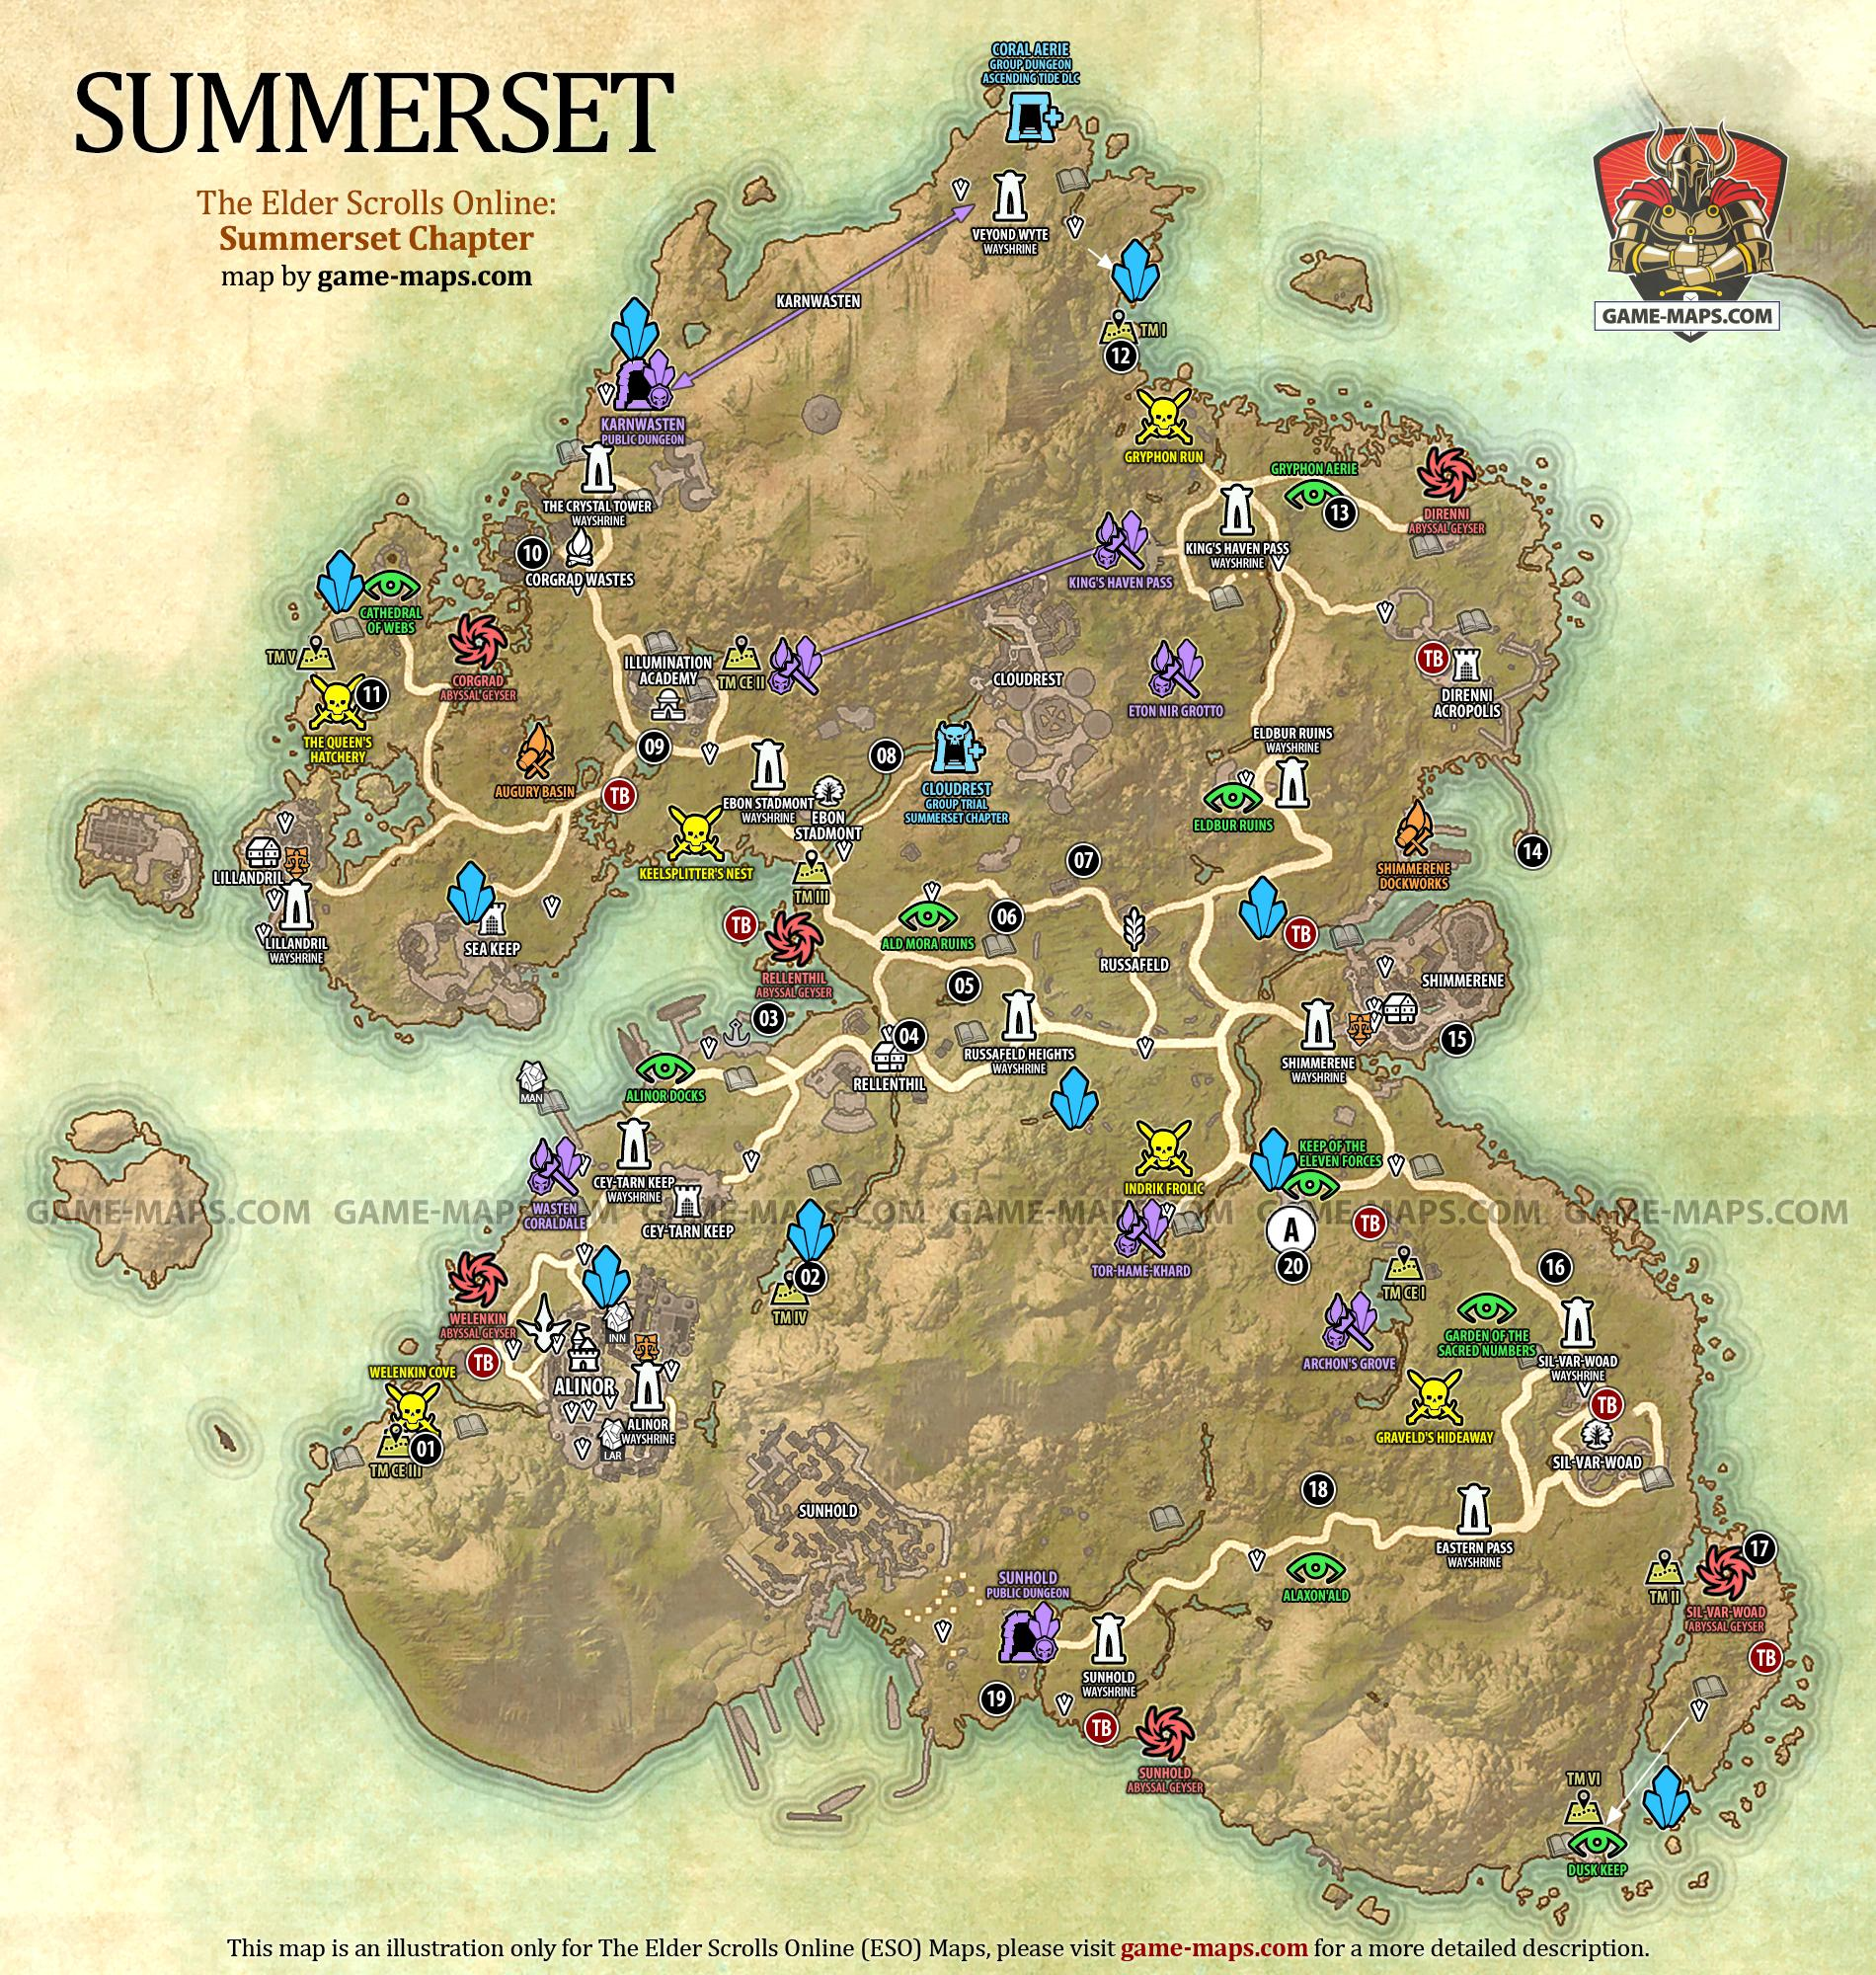 Eso Stormhaven Treasure Map : stormhaven, treasure, Summerset, Elder, Scrolls, Online, Game-maps.com